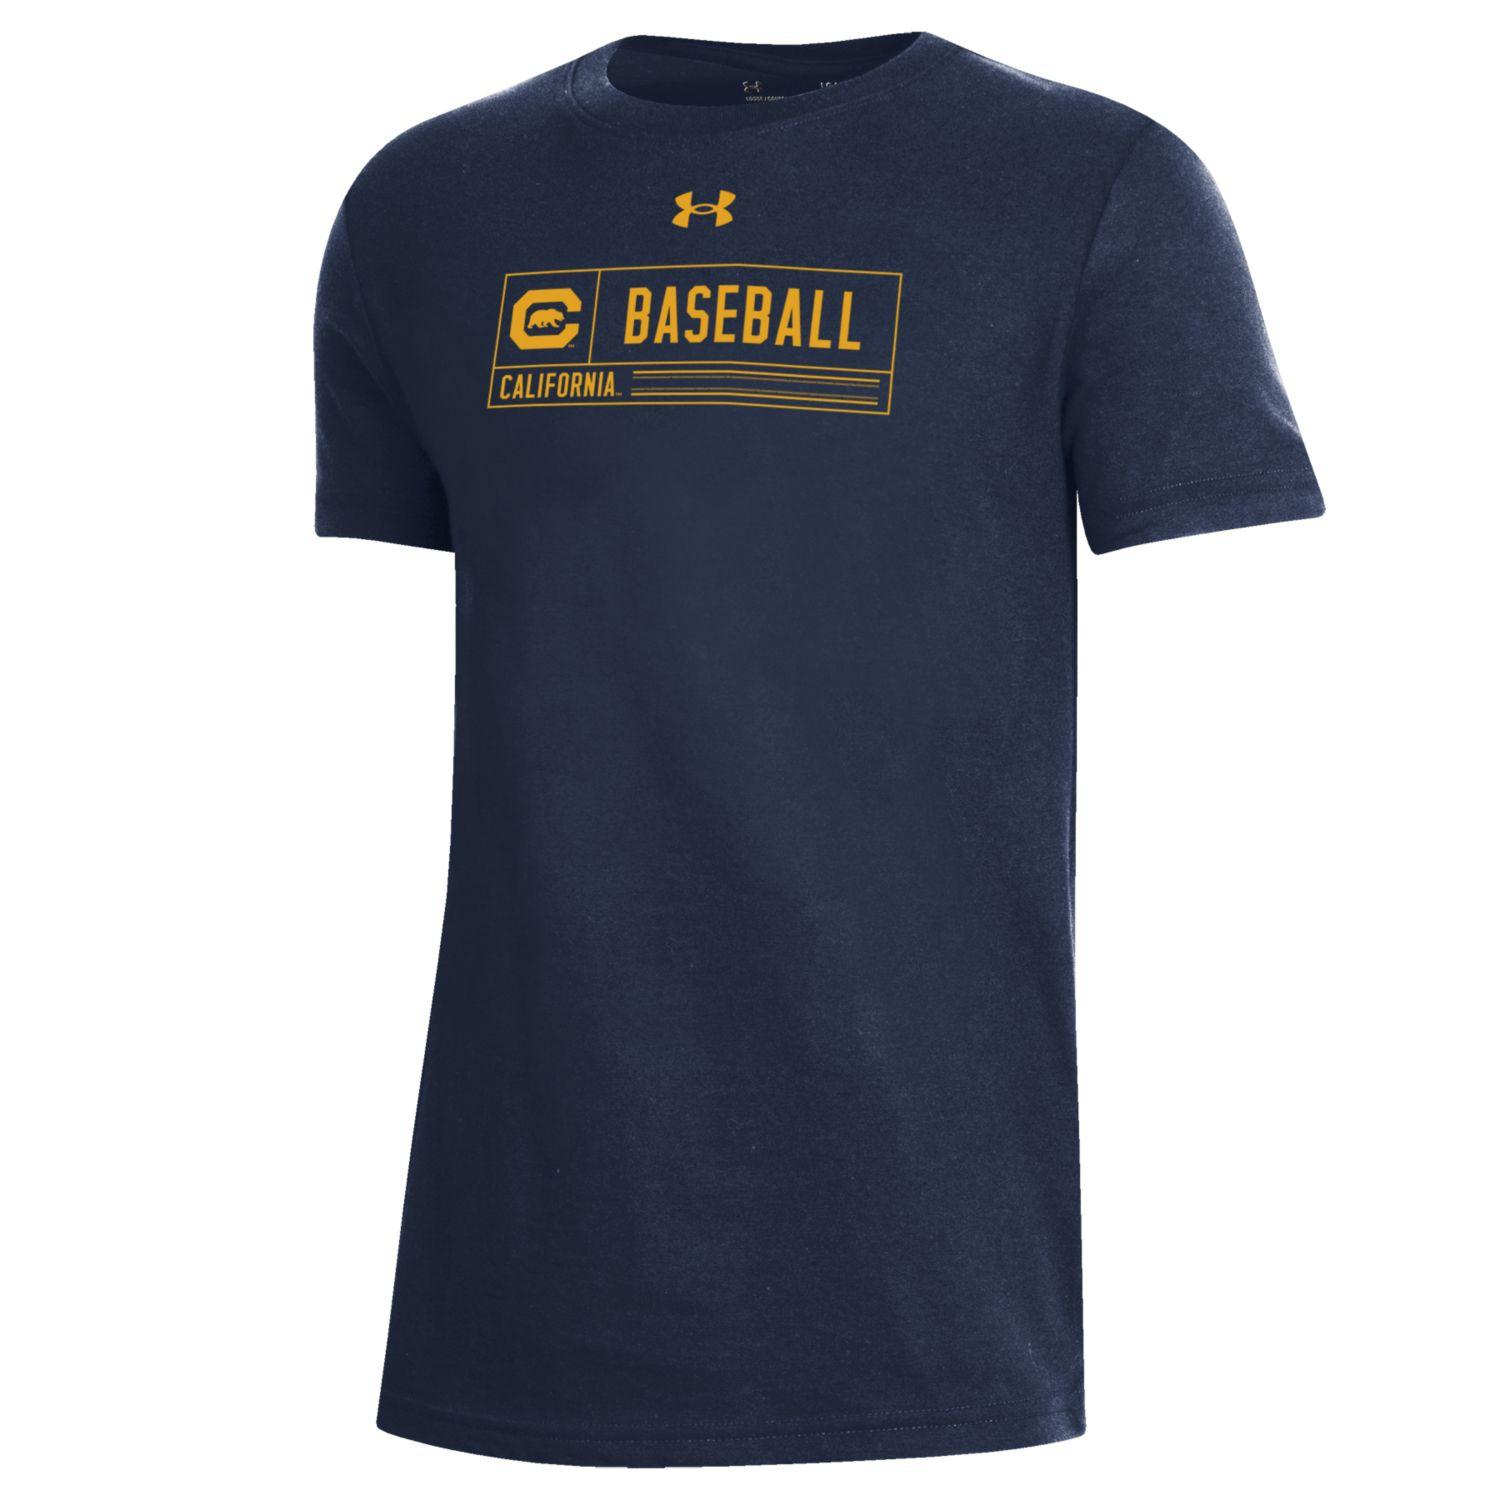 Youth B Performance Cotton SS Tee Baseball